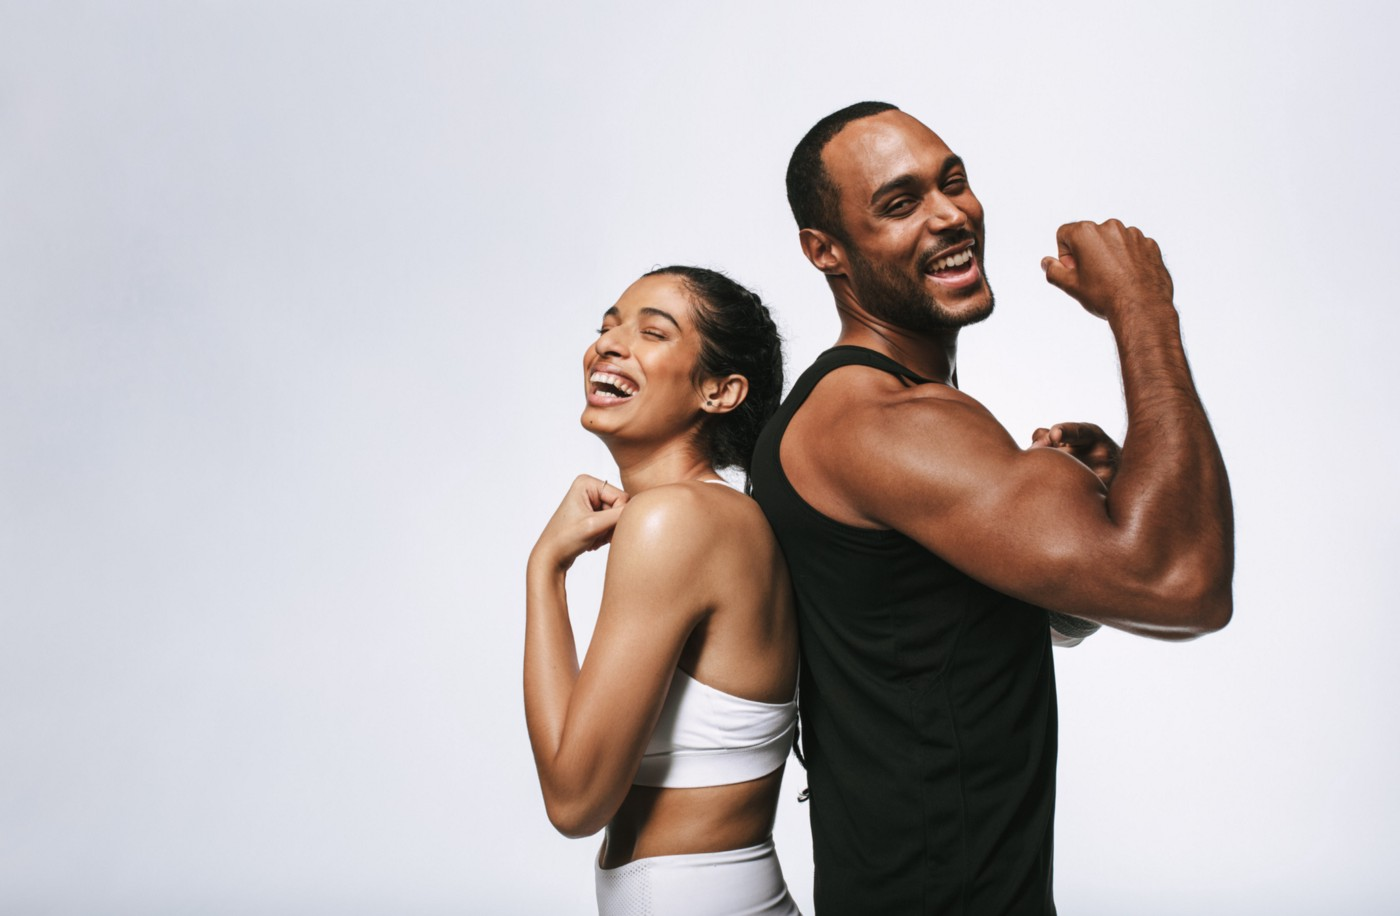 Happy fit couple showing off their muscles.